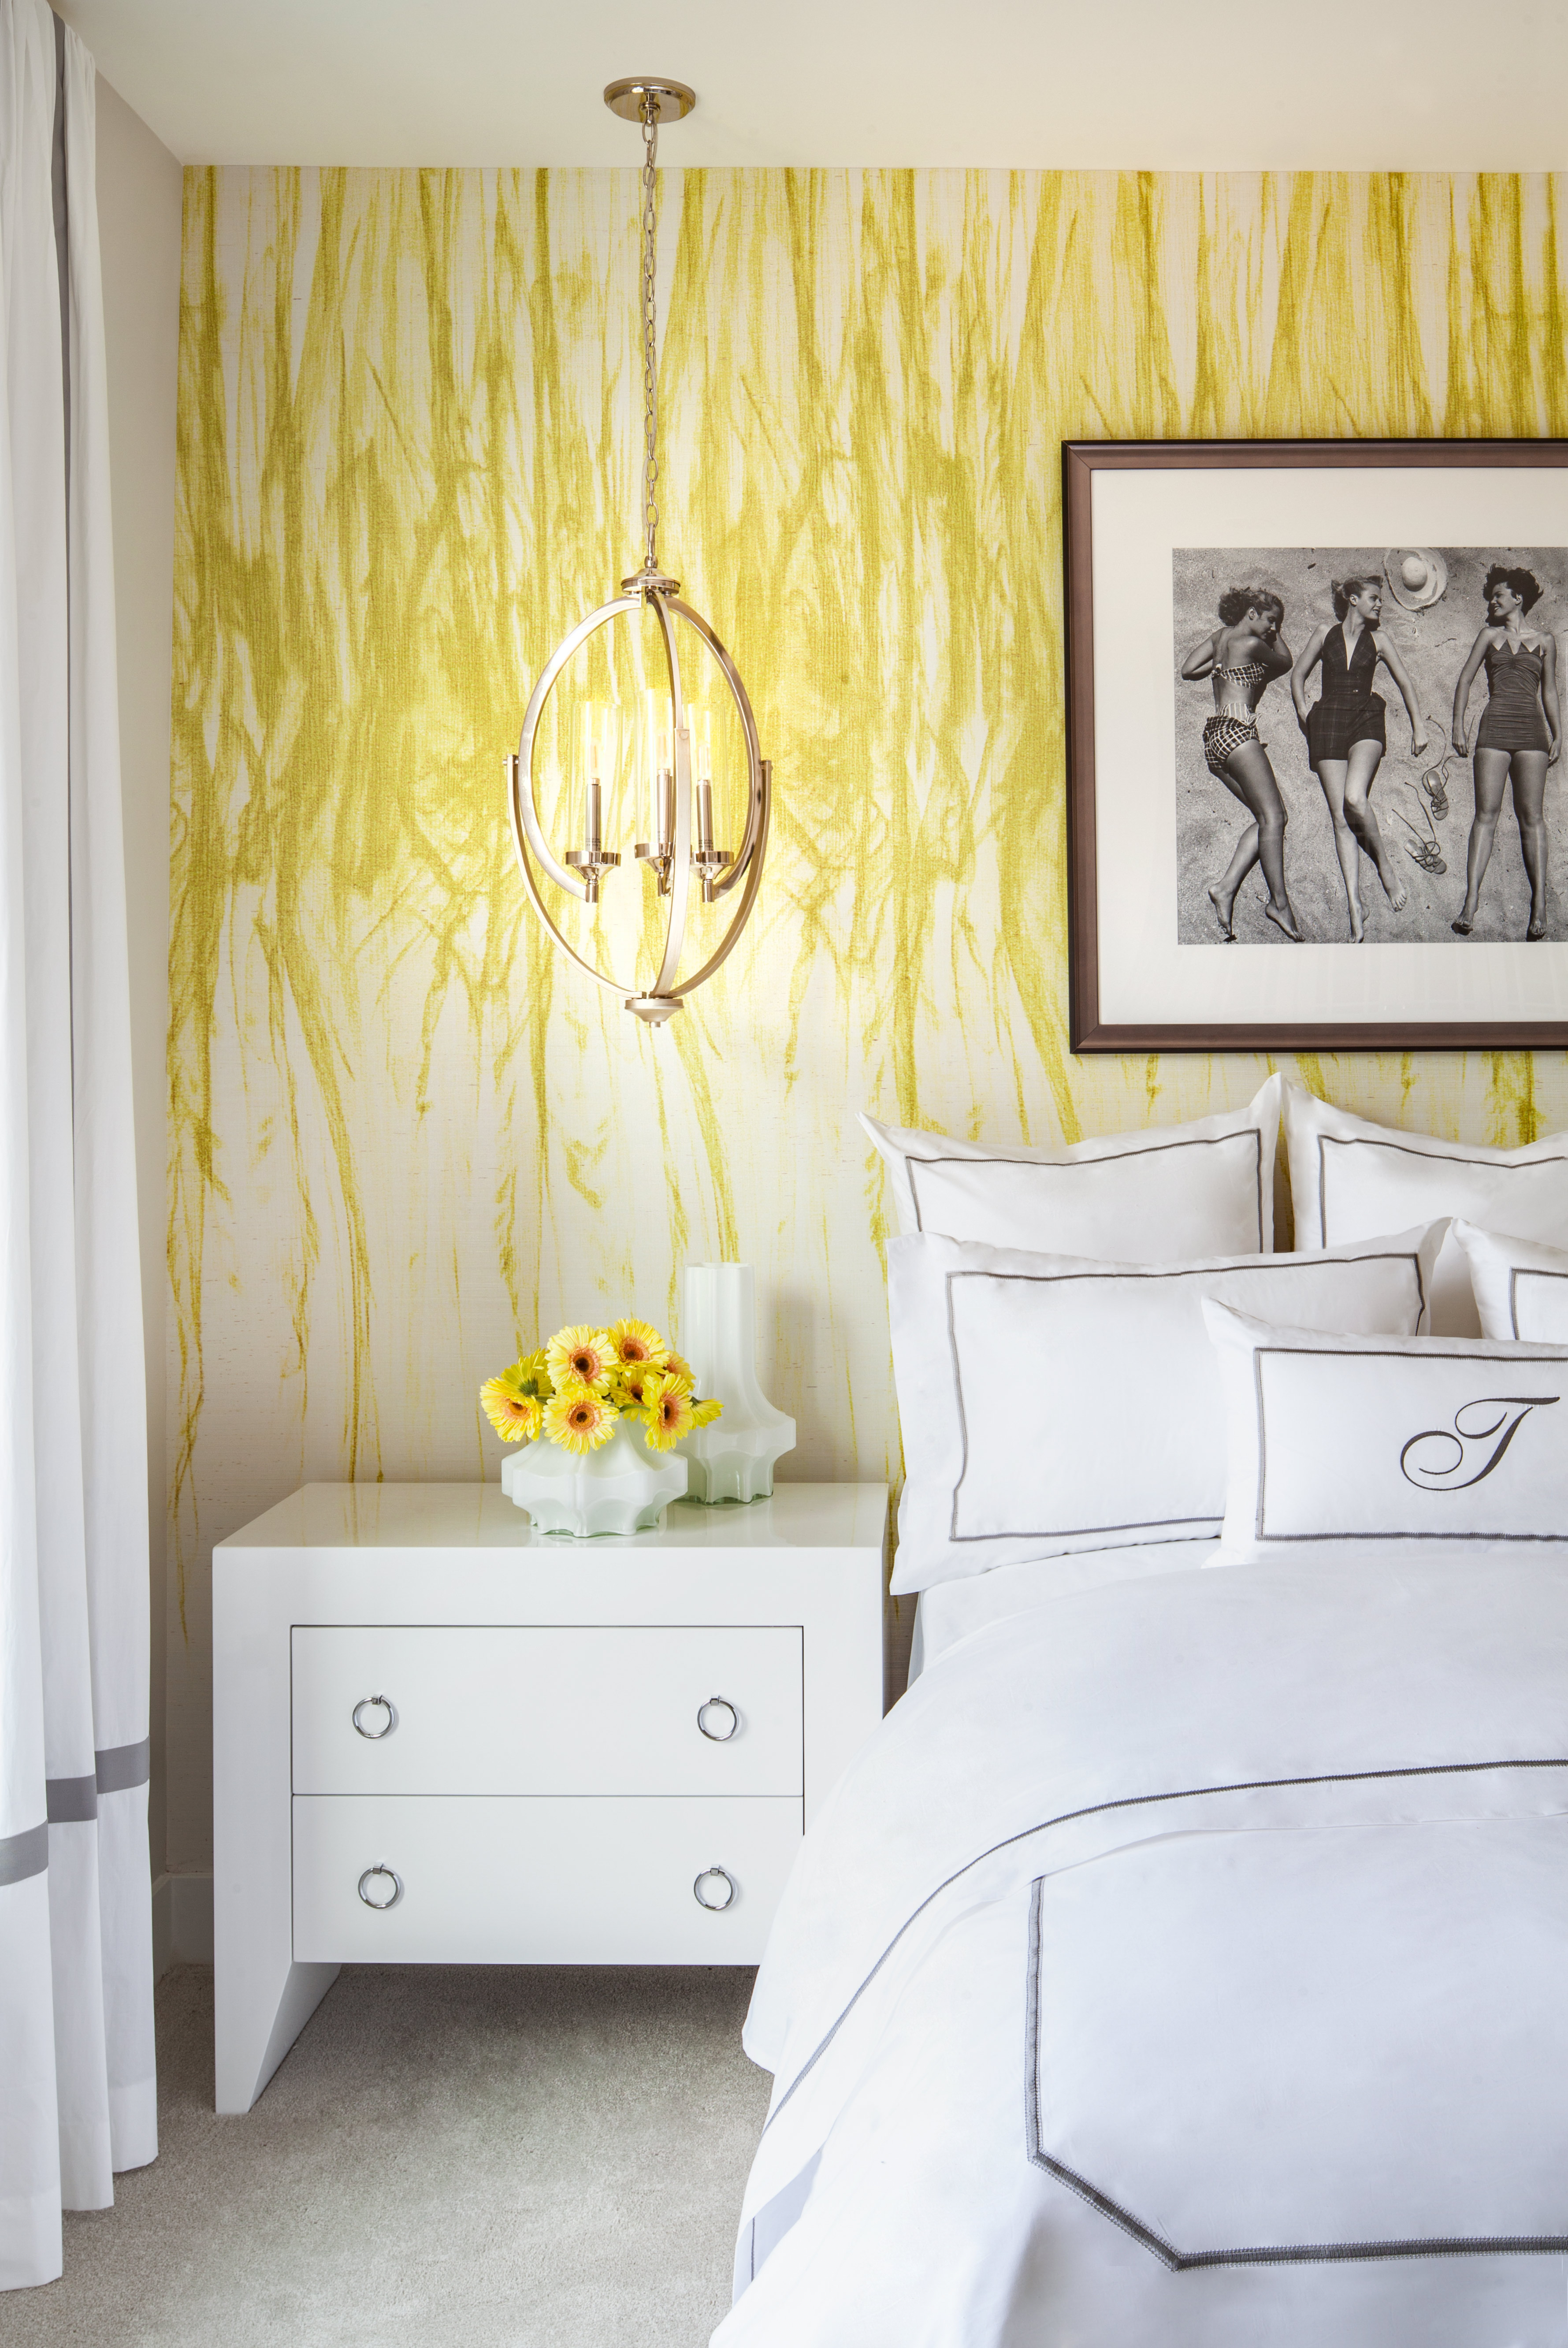 Bedroom with yellow wall.